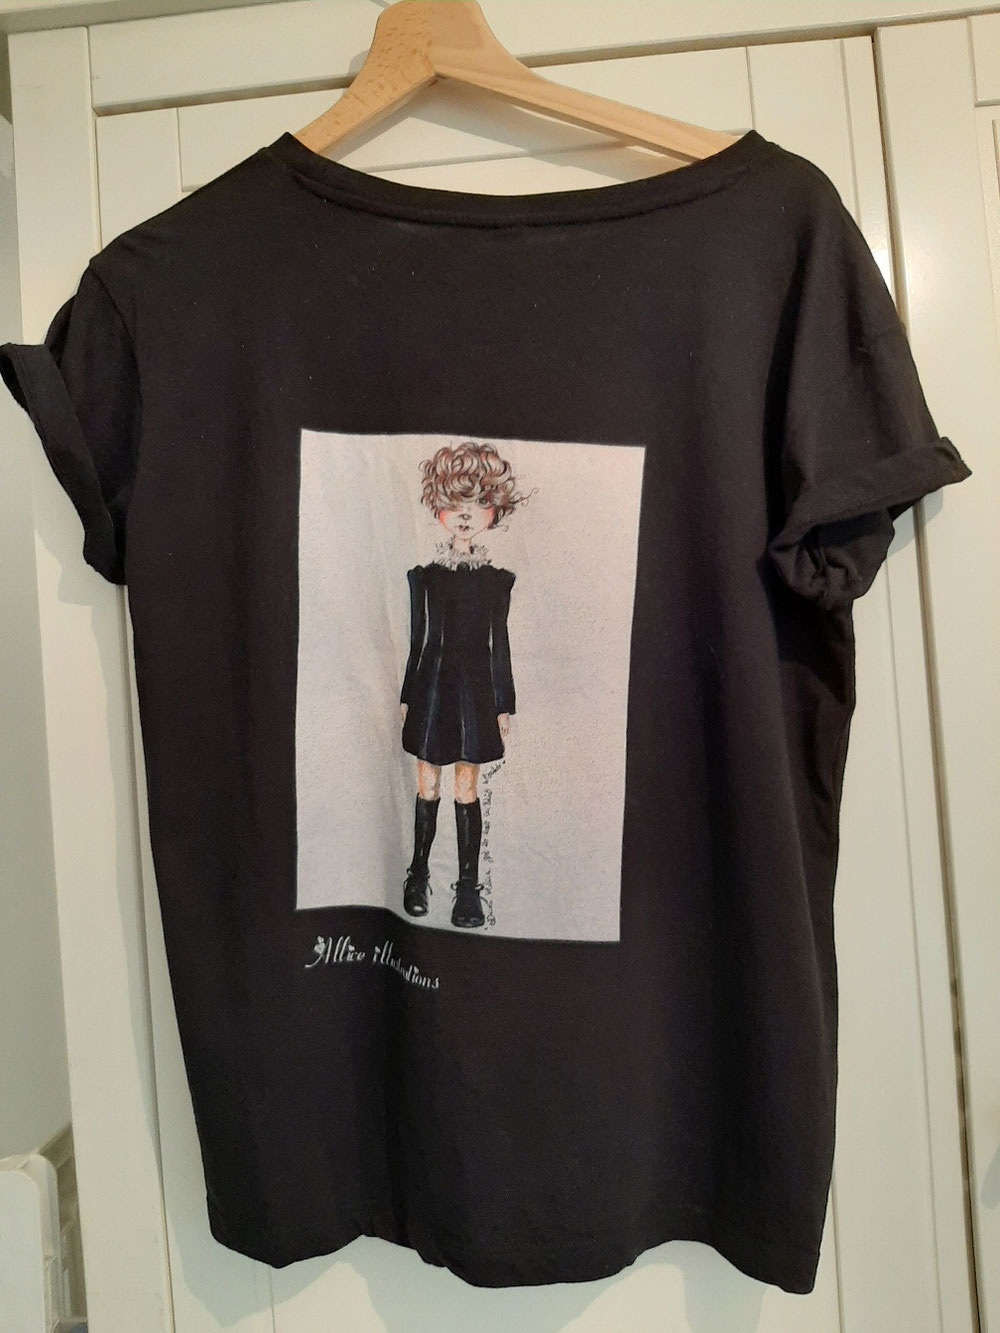 Special edition Wednesday Adams t shirt 20 euro's